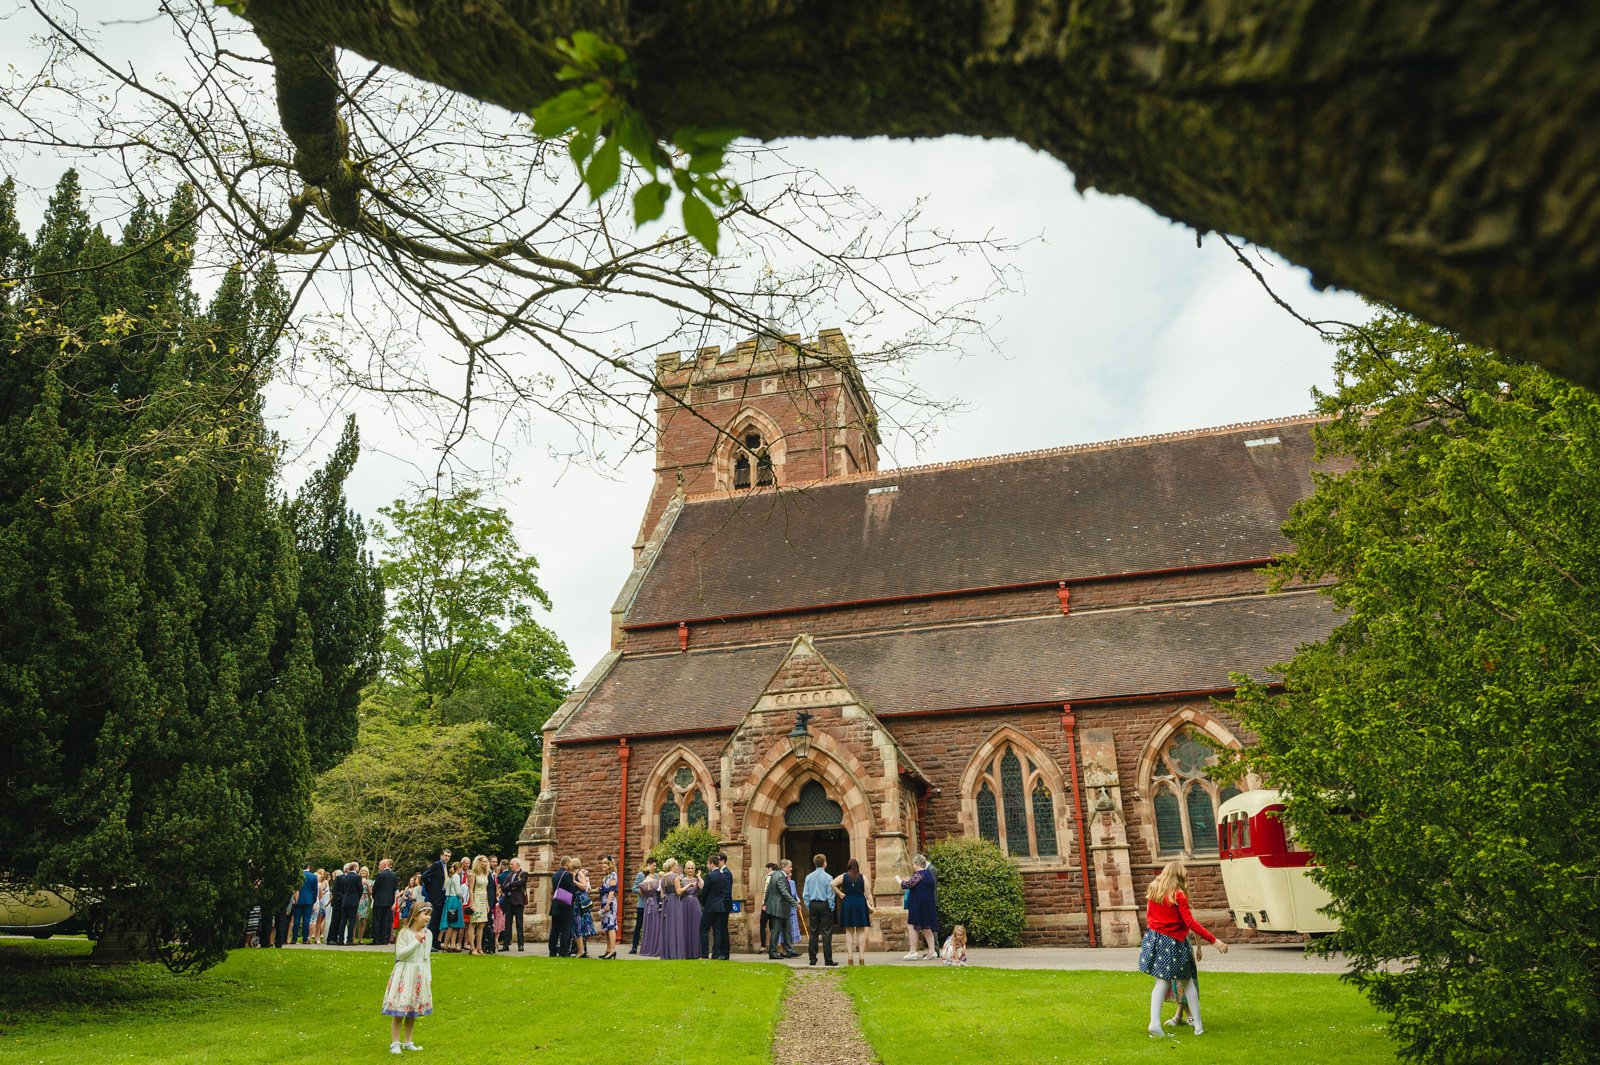 millers of netley wedding 29 - Millers Of Netley wedding, Dorrington, Shrewsbury | Emma + Ben